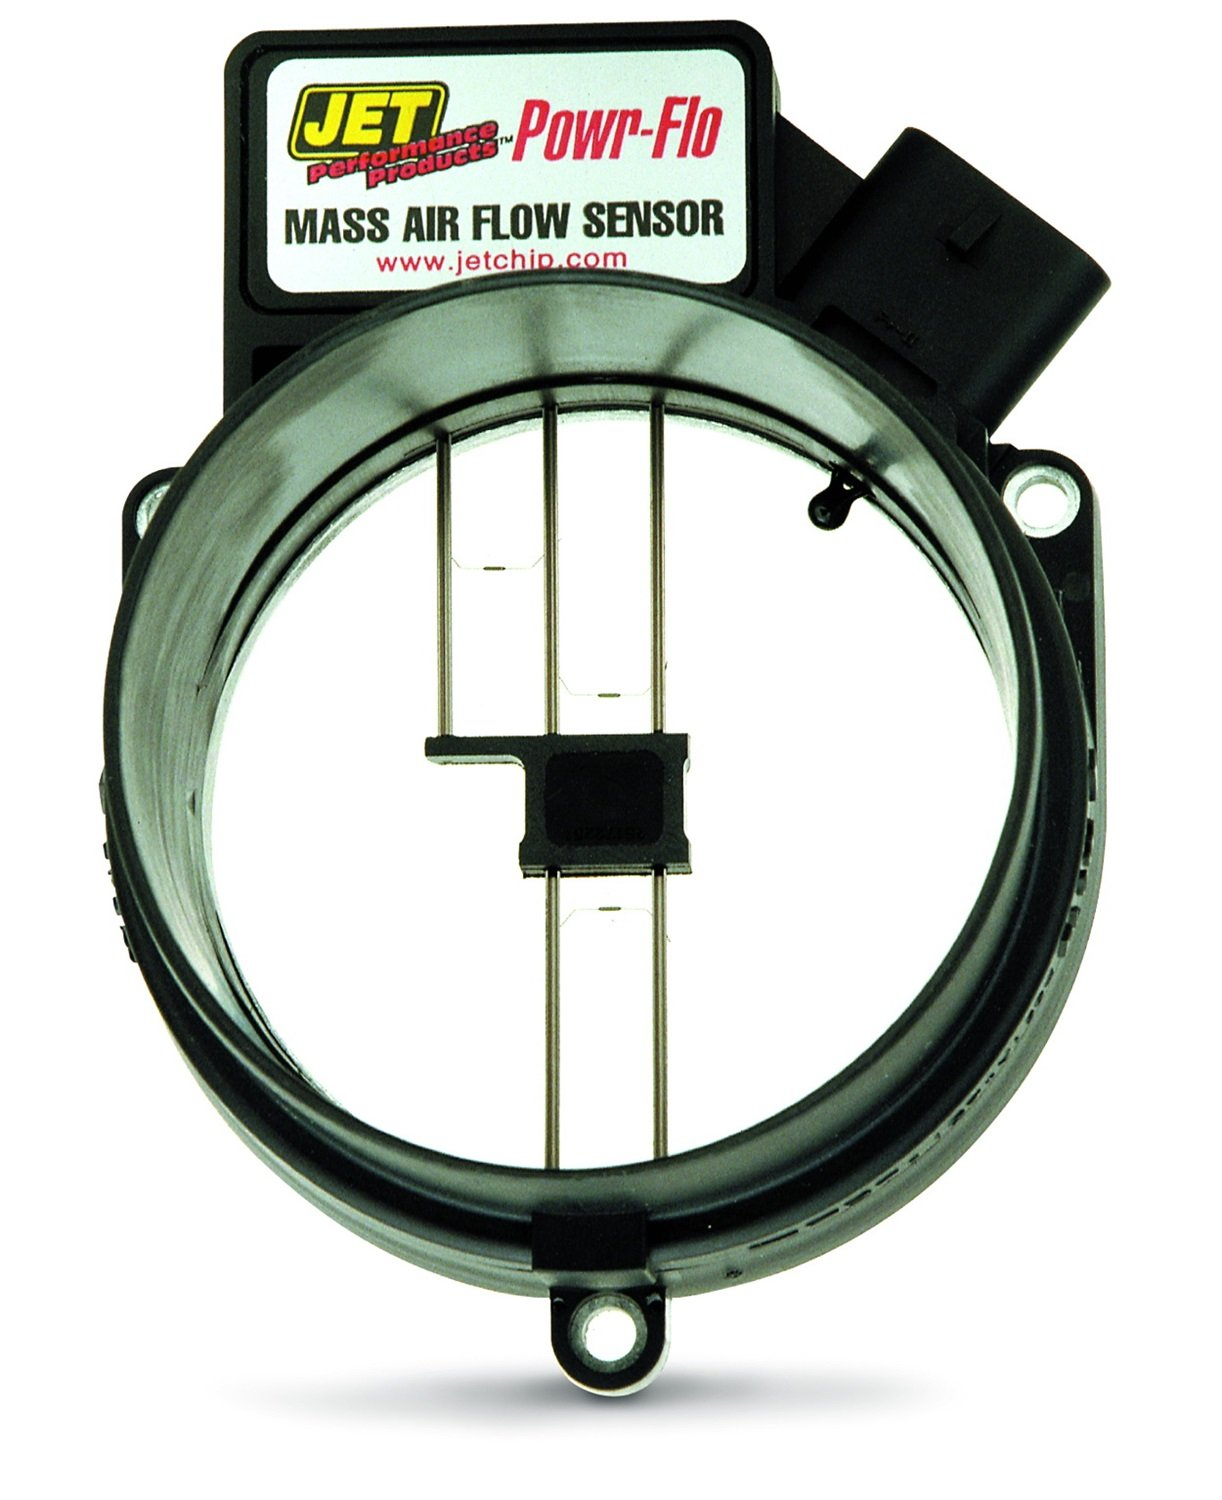 JET 69145 Powr-Flo Mass Air Sensor